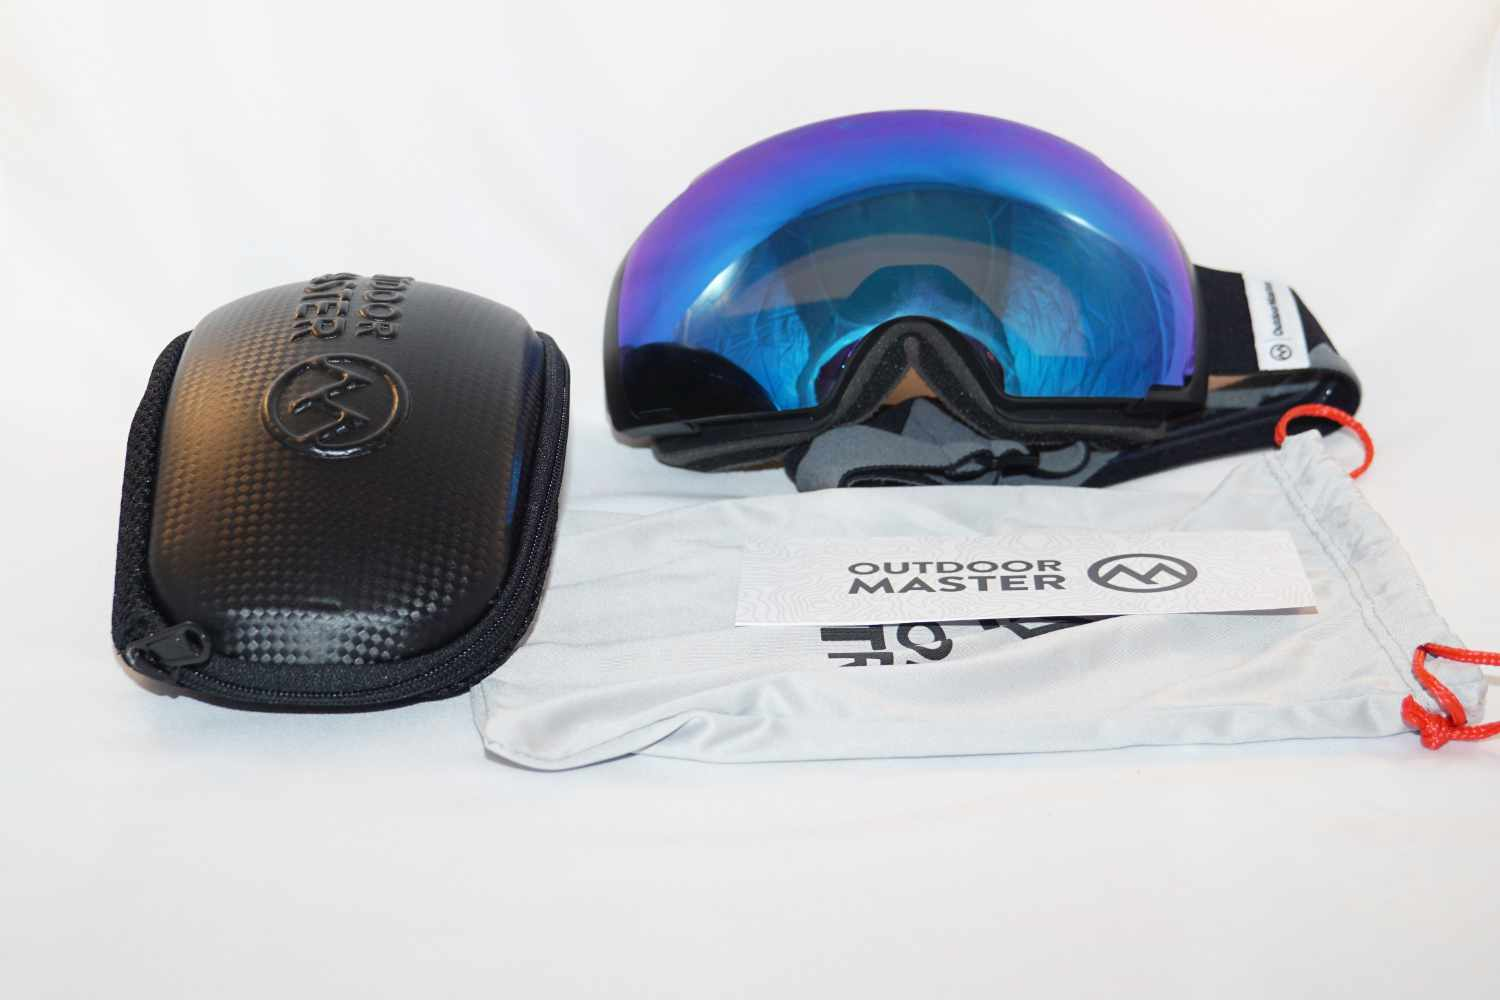 outdoormaster pro ski goggles review